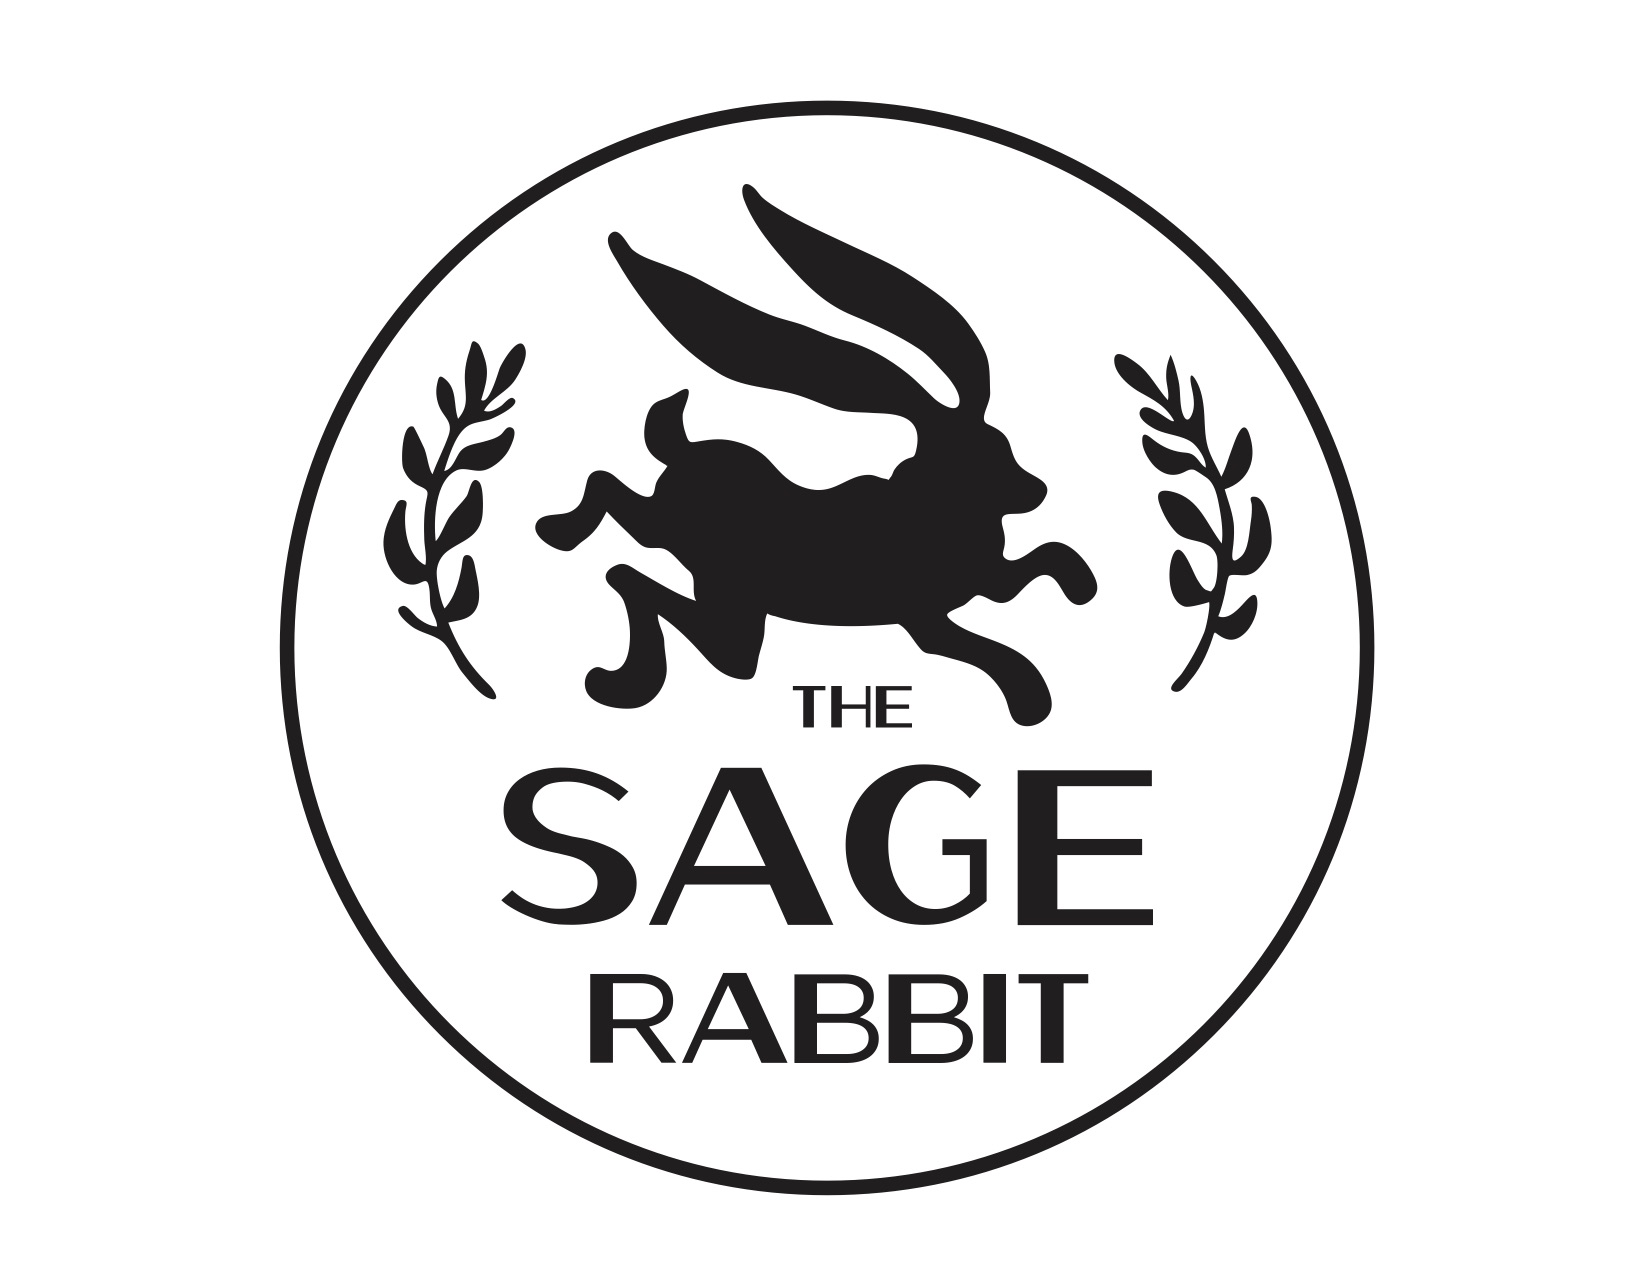 The Sage Rabbit